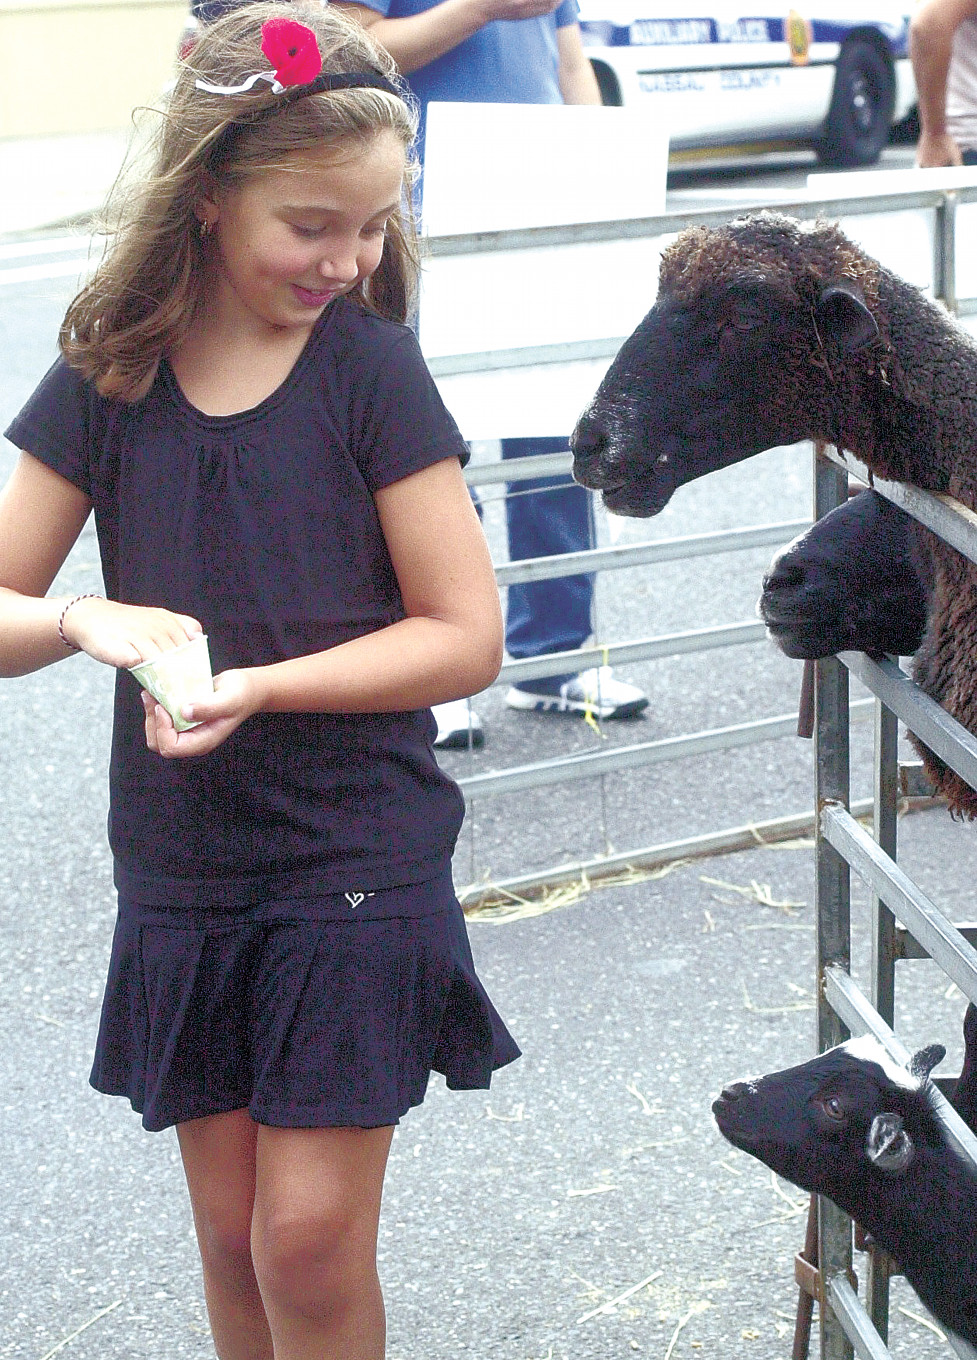 Sophia Bruccoleri fed the goats at the 2012 Merrick Fall Festival. The petting zoo will return to this year's fair, which is set for Sept. 27 to 29.